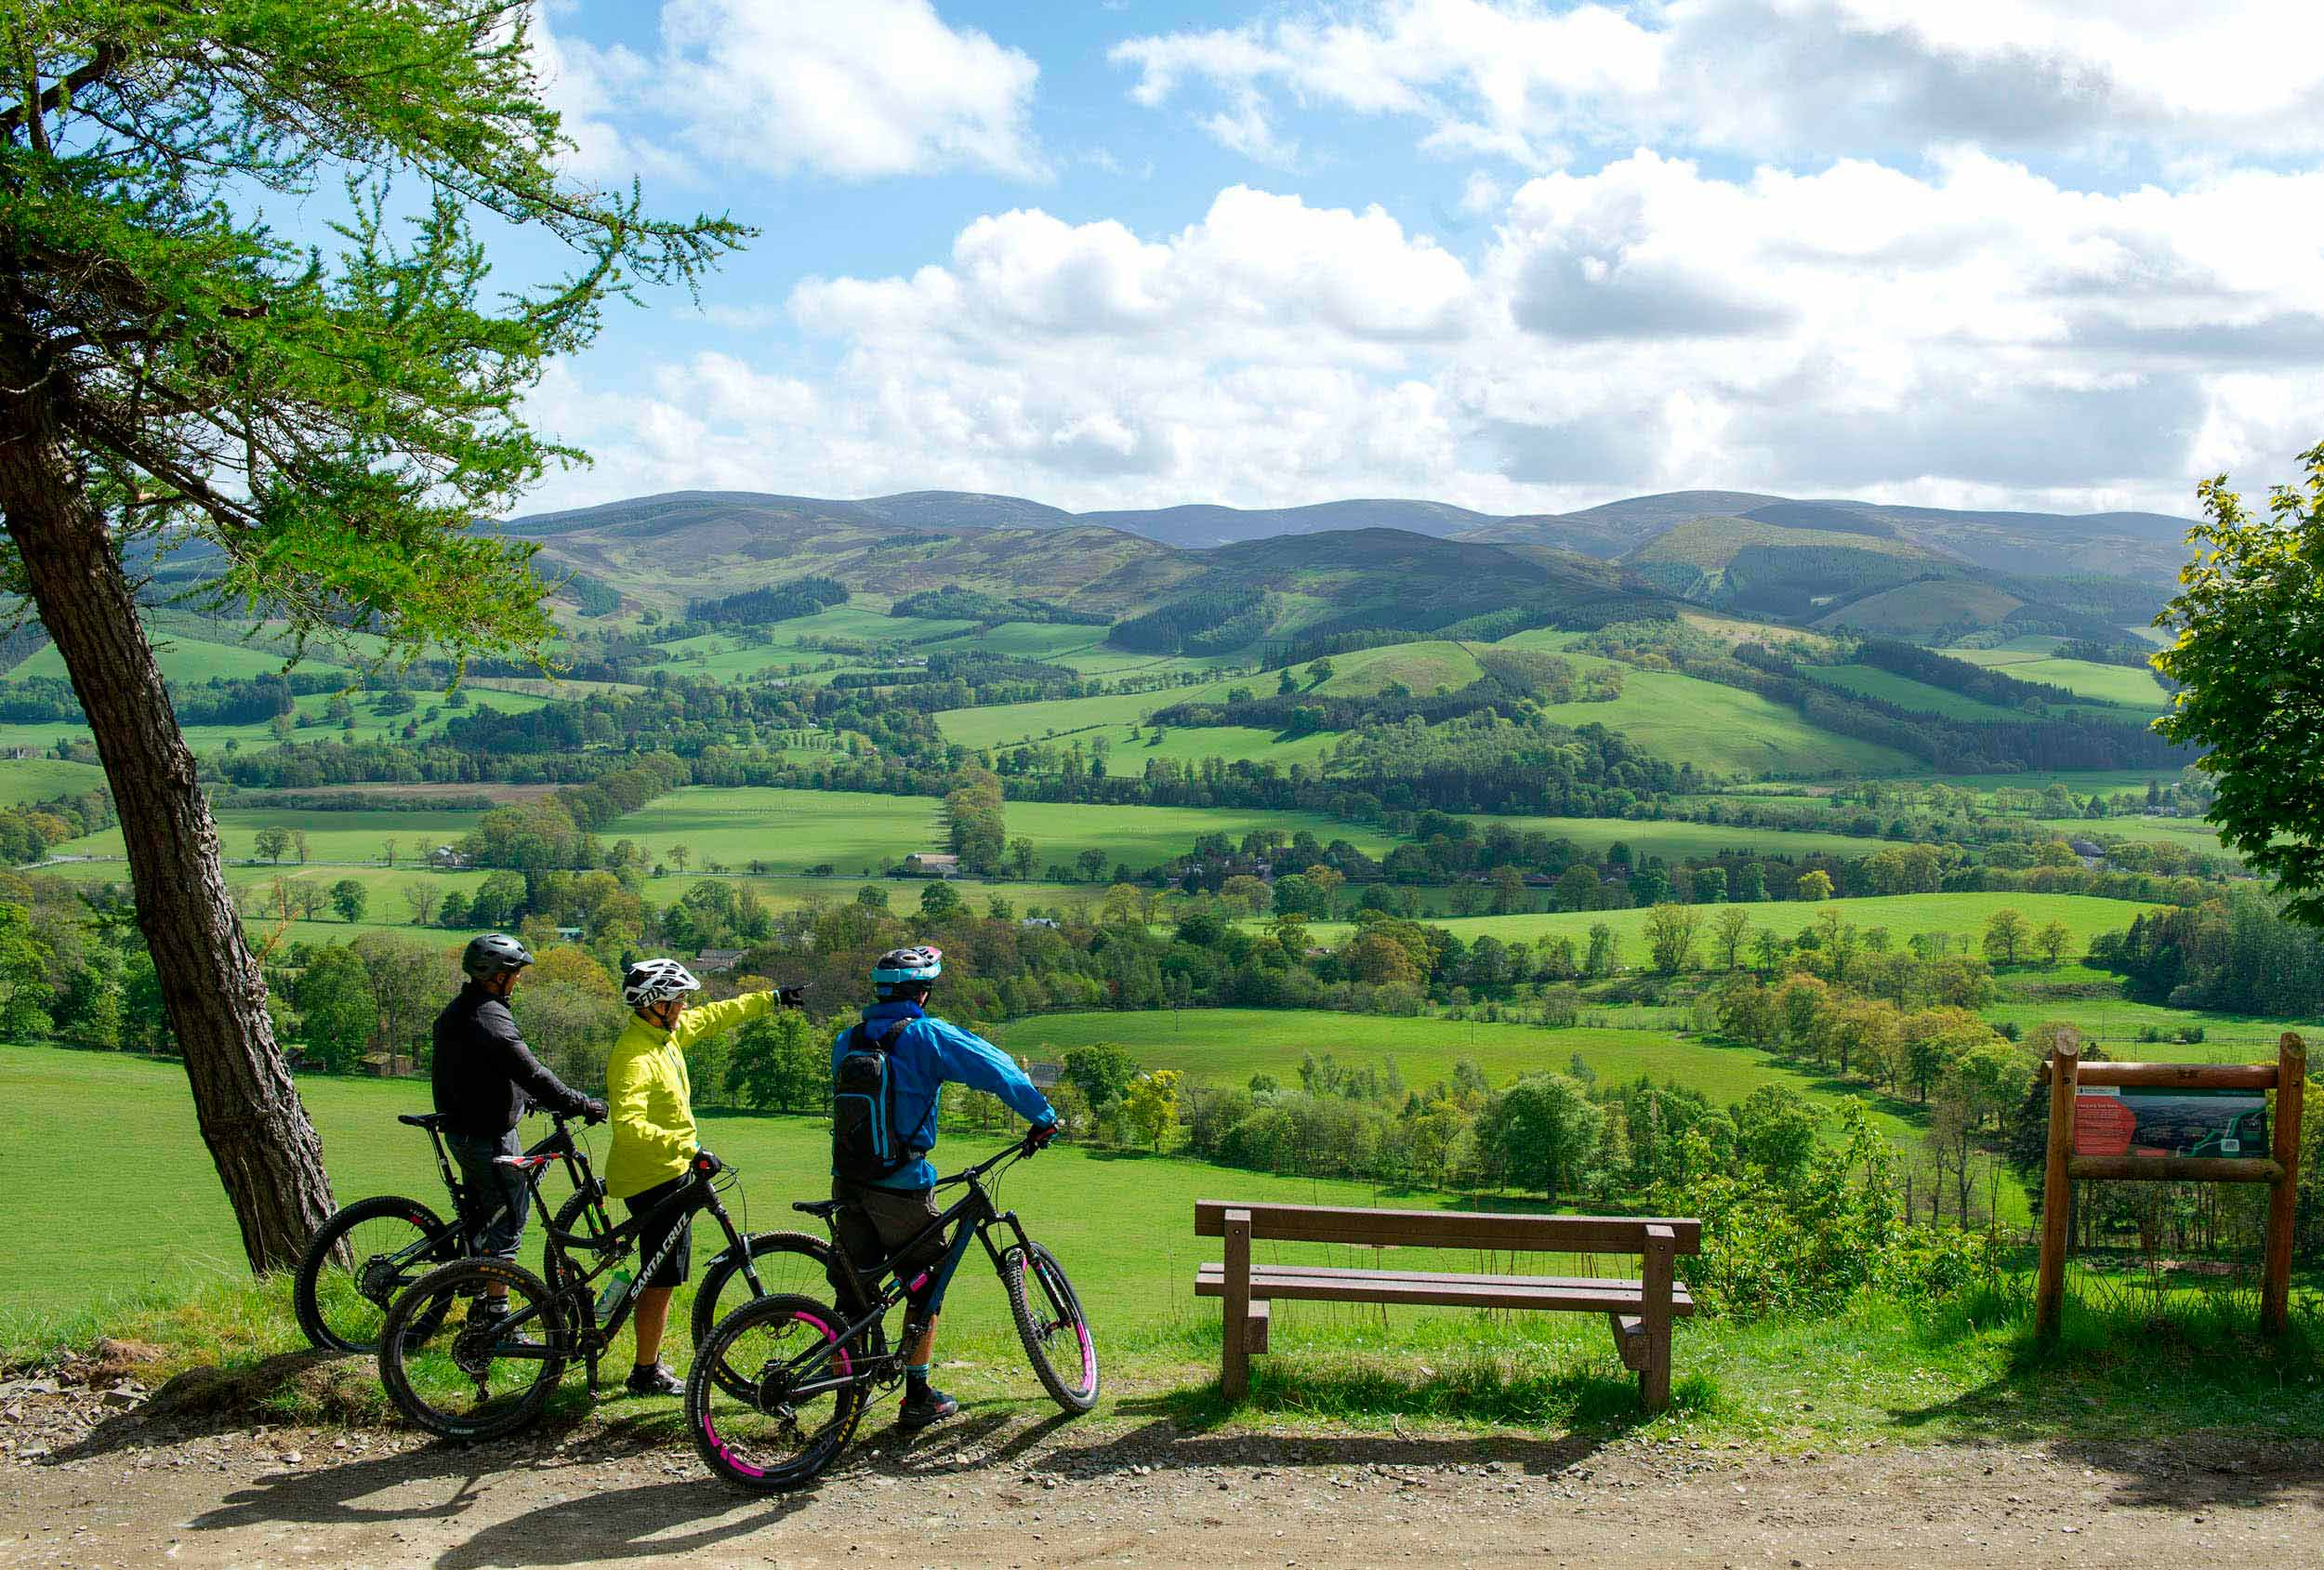 Scottish-Borders-visitscotland_29846837730---Cyclists-enjoy-the-view-over-the-Tweed-valley-from-Glentress-Forest-Peebles-Scottish-Borders-small.jpg